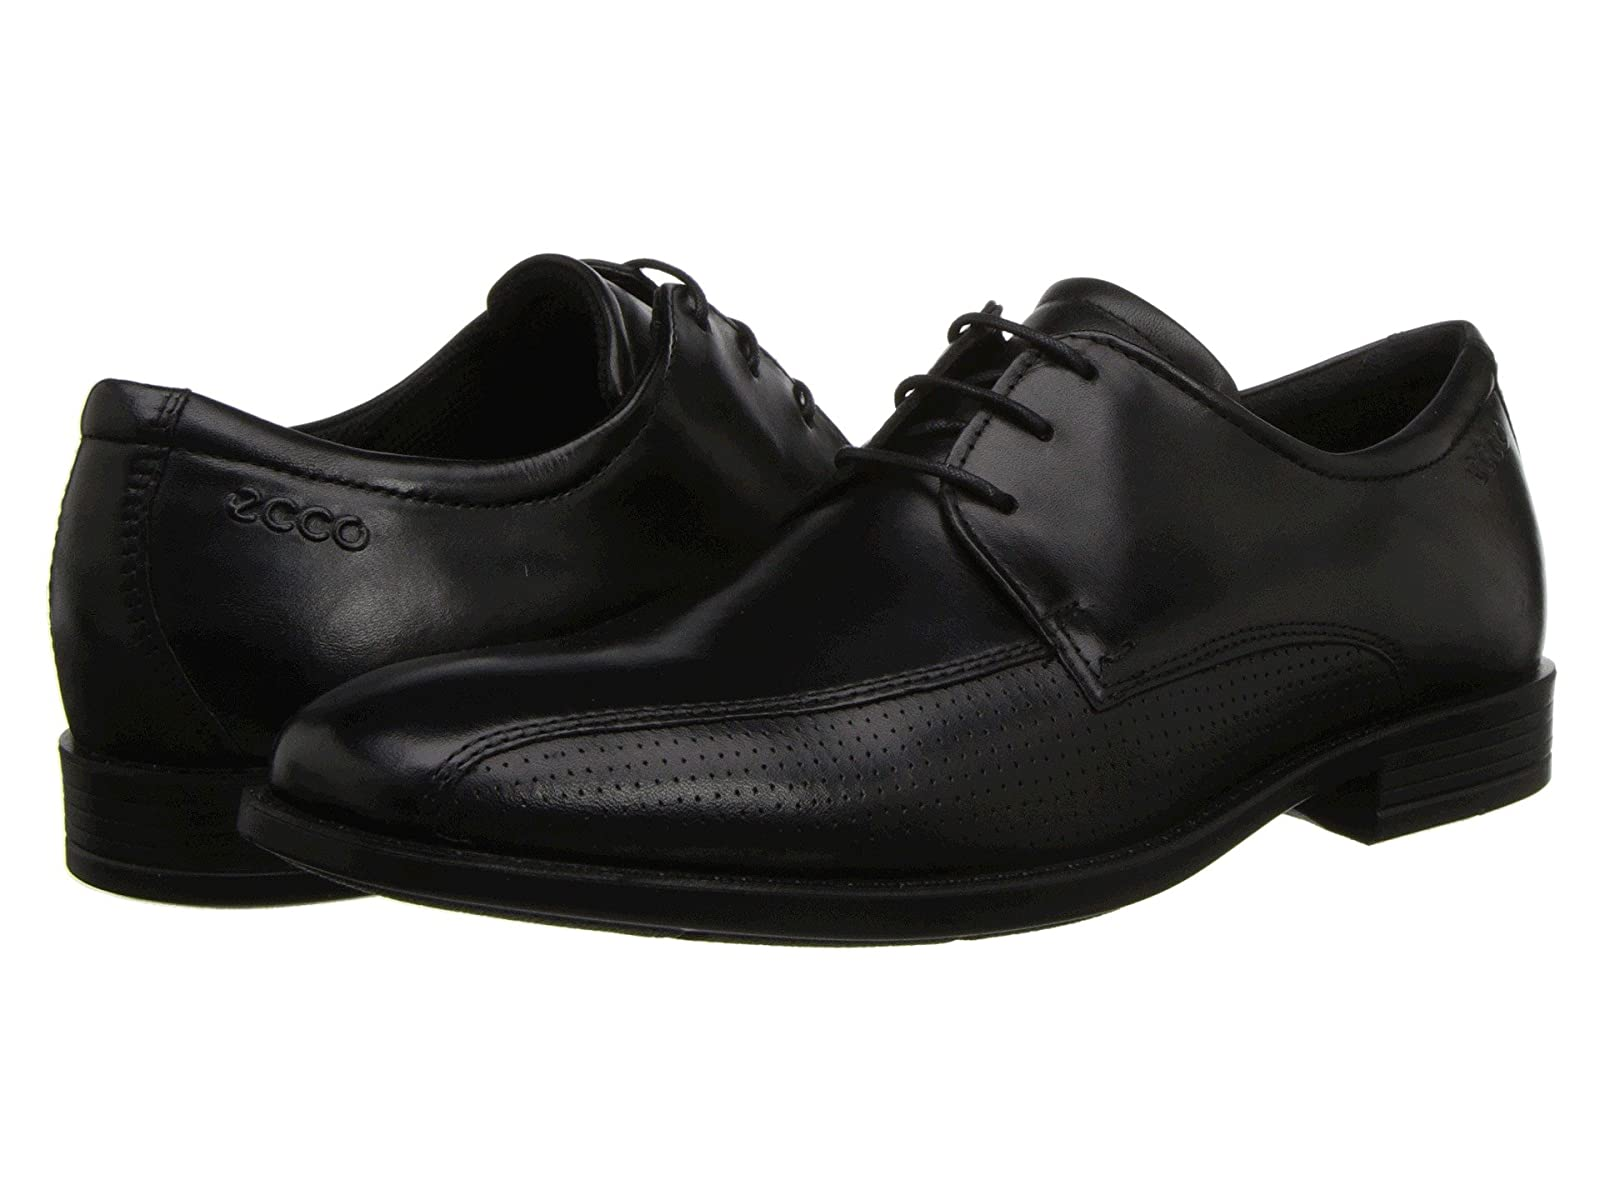 ECCO Edinburgh Perforated TieCheap and distinctive eye-catching shoes